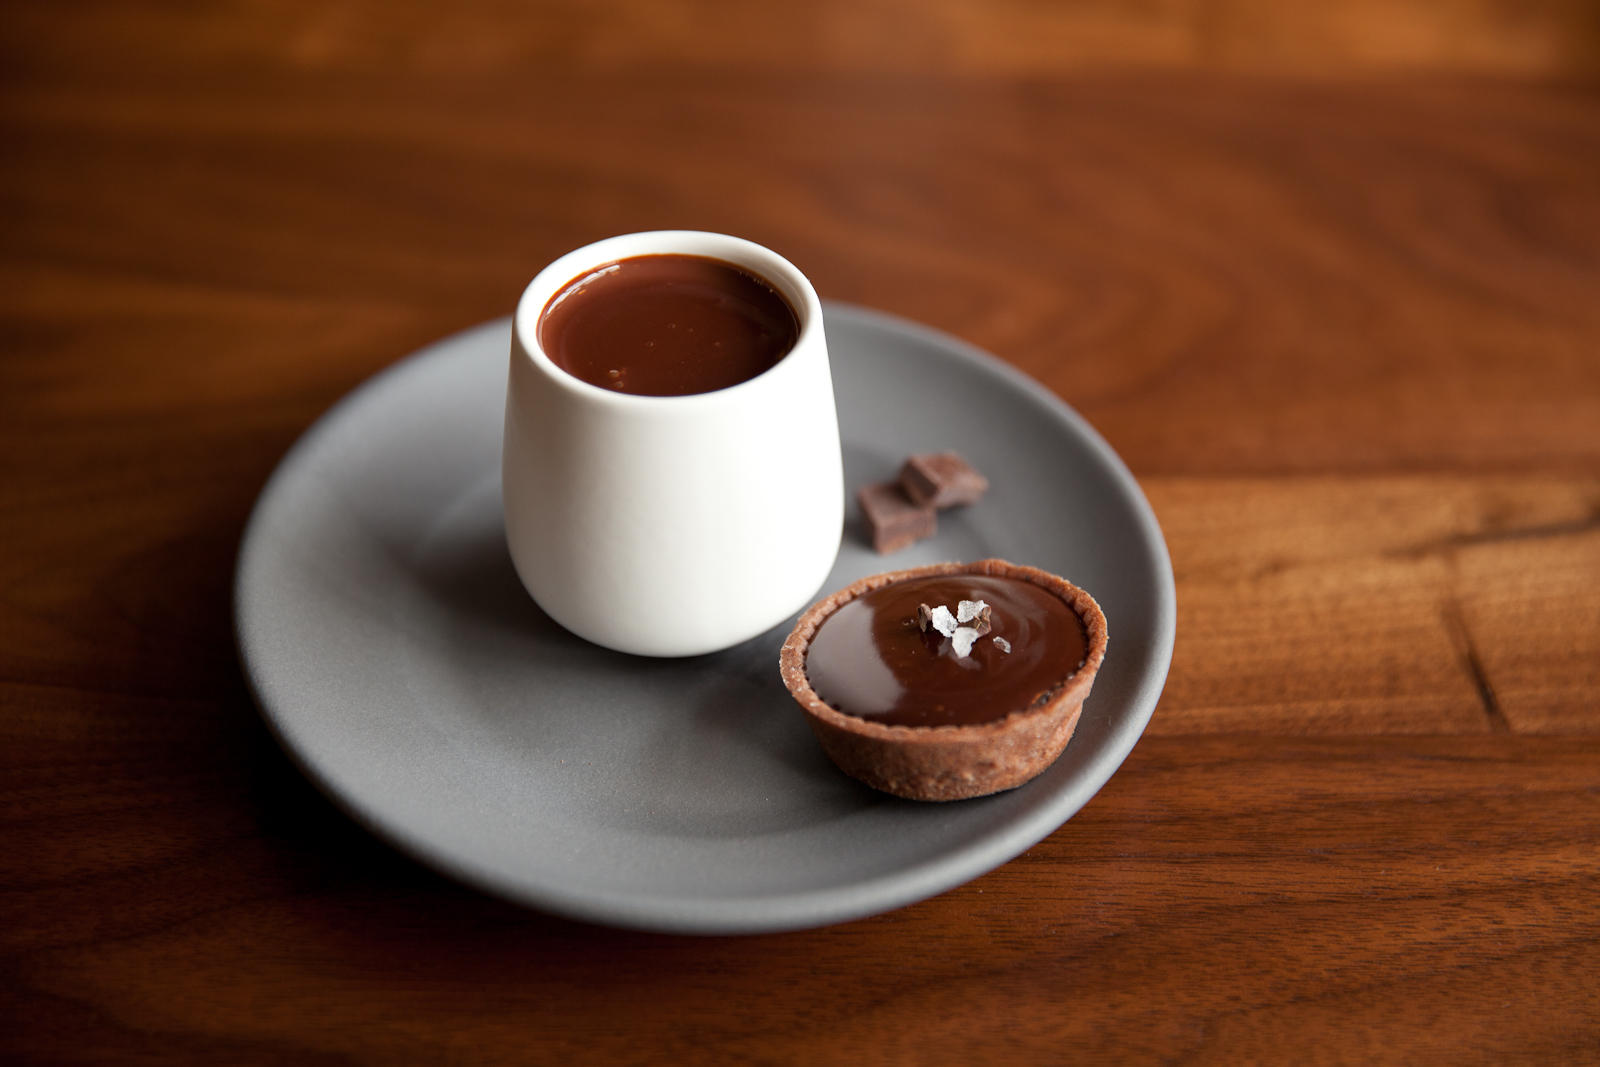 Bean-To-Bar Chocolate Makers Dare To Bare How It's Done | Public Radio Tulsa